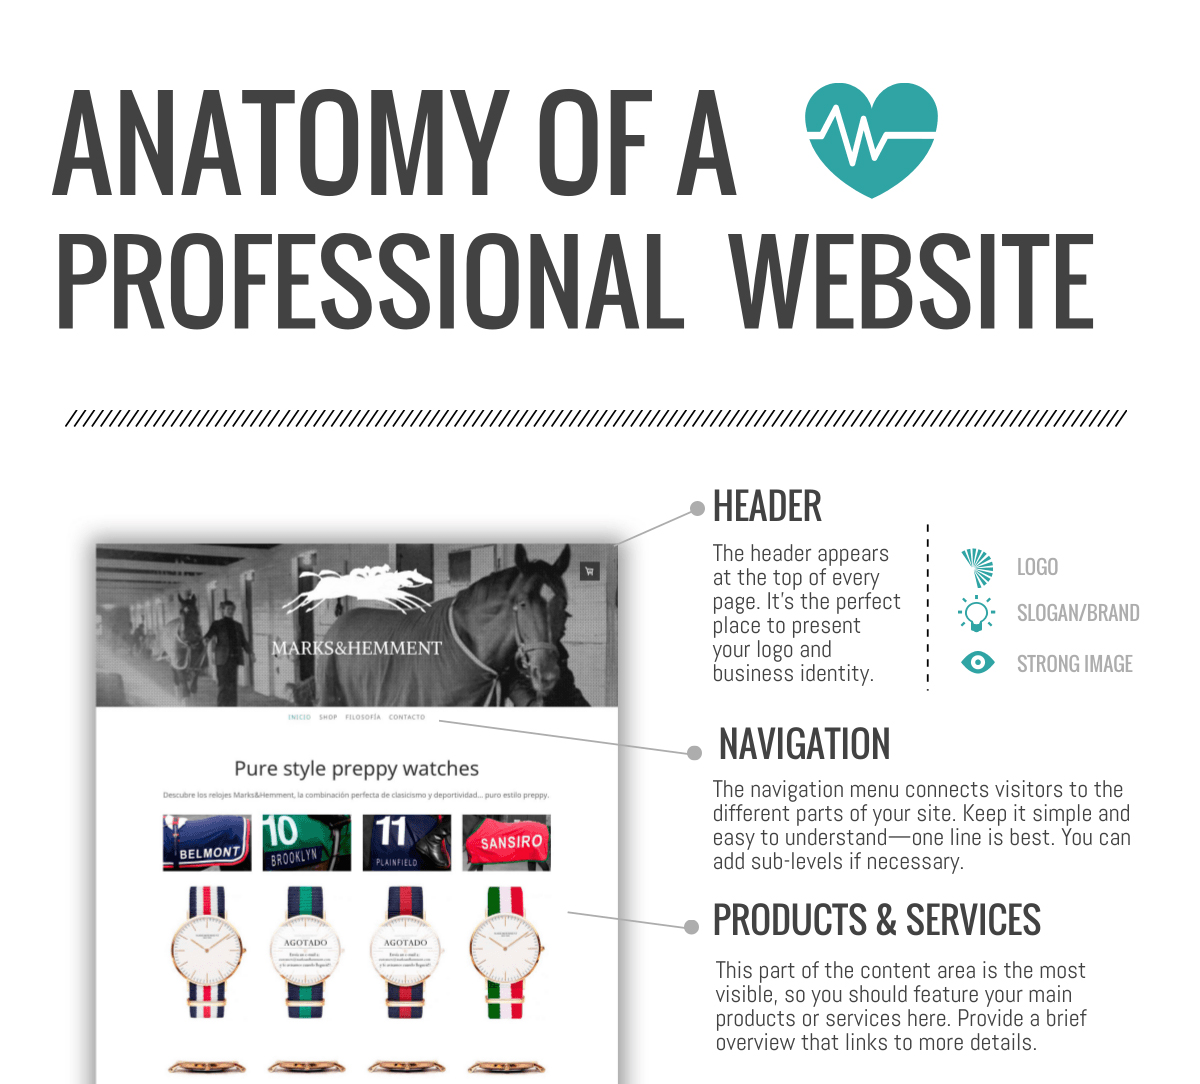 jimdo_anatomy_of_a_professional_website